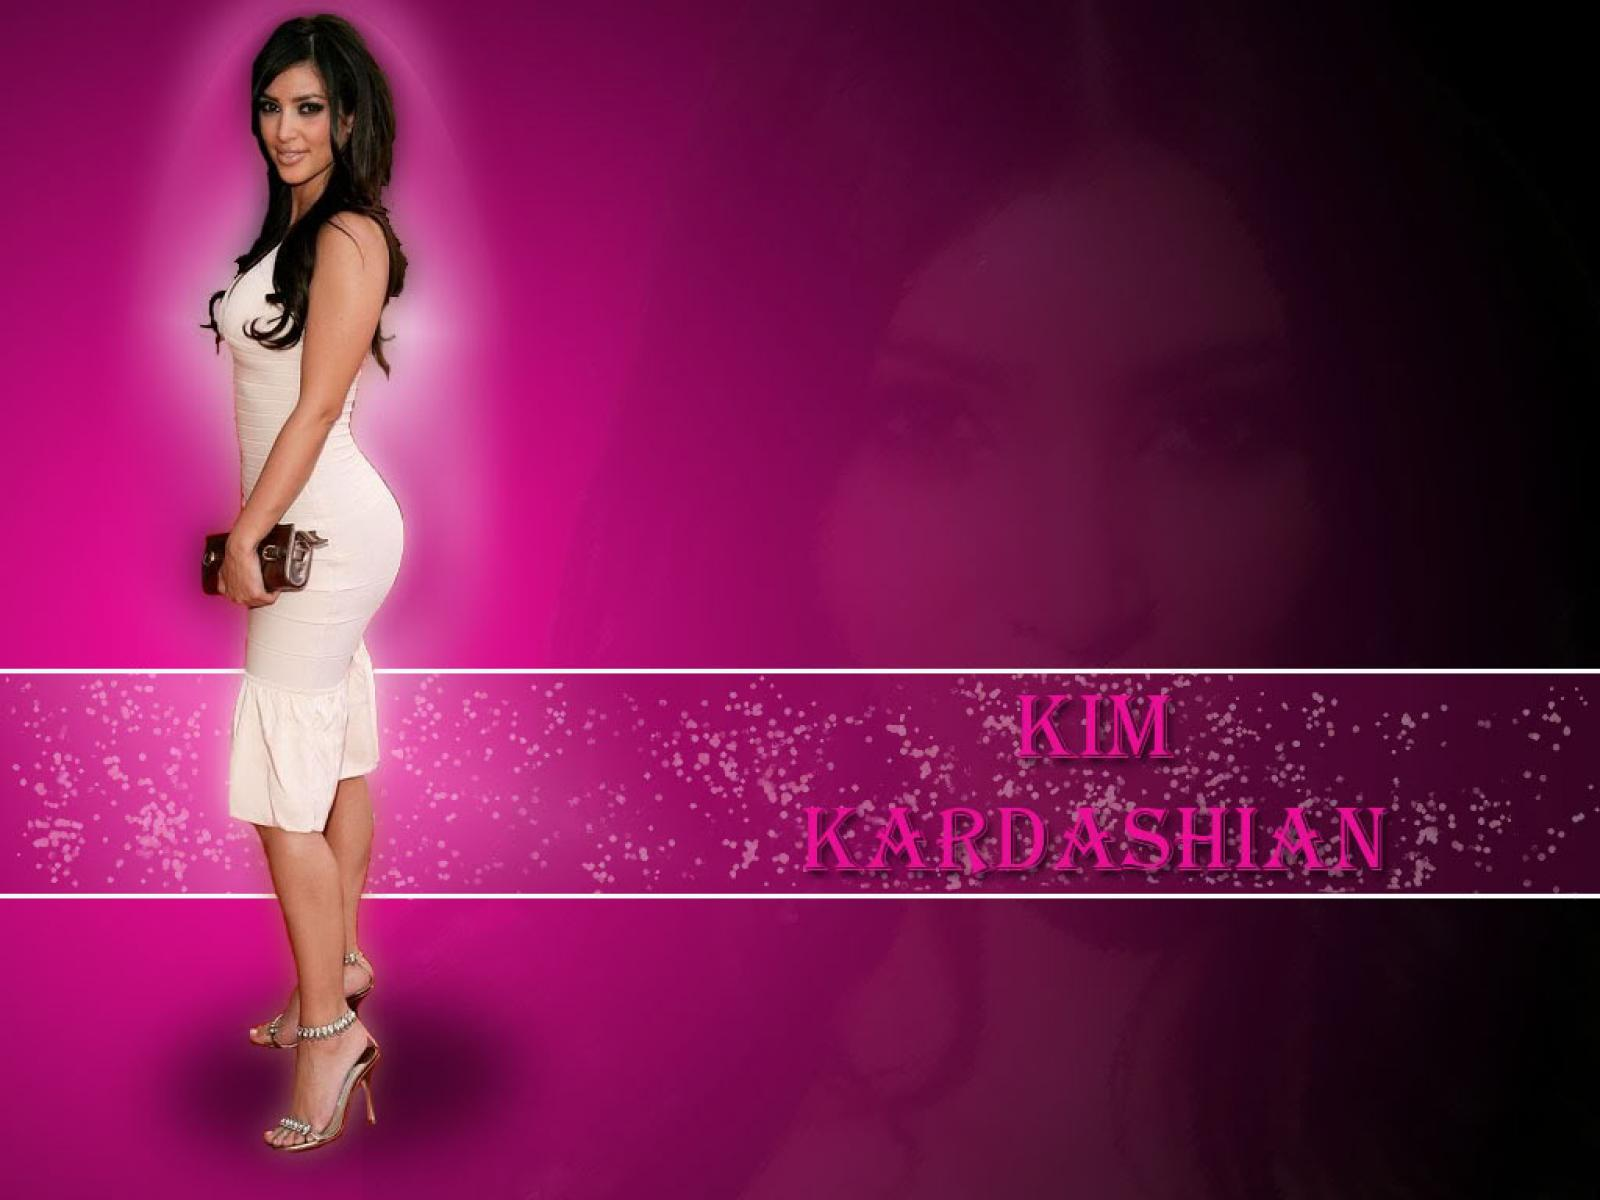 desktop kim kardashian wallpapers kim kardashian wallpaper hd 13jpg 1600x1200